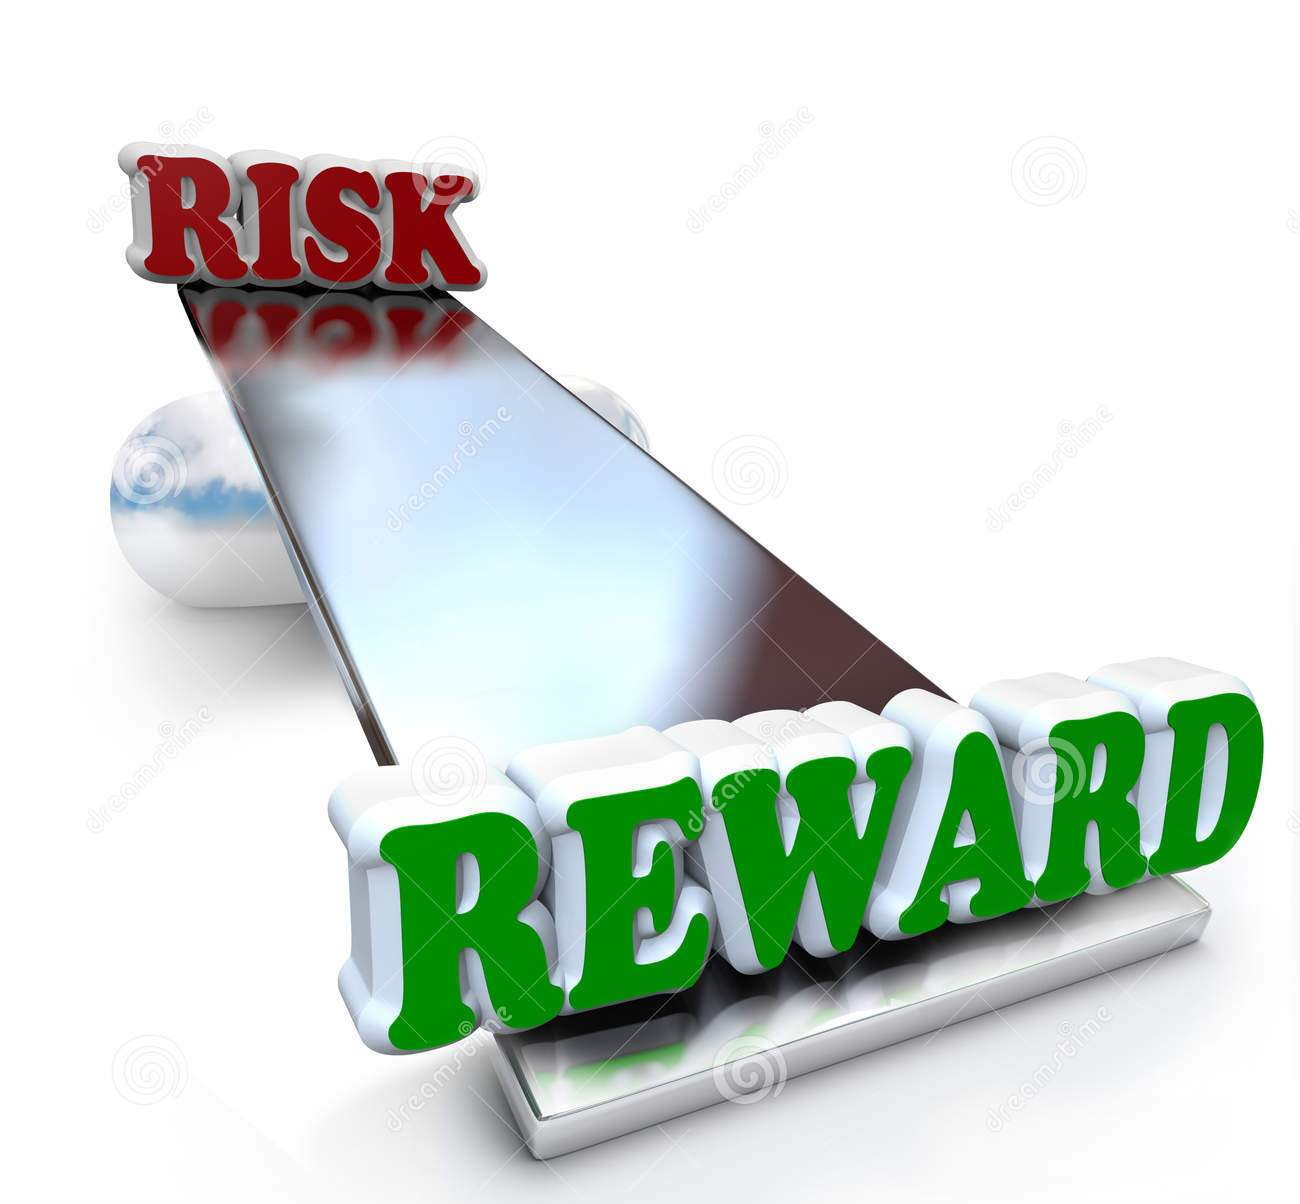 Risk v reward - Nette crop the bottom part so only the picture